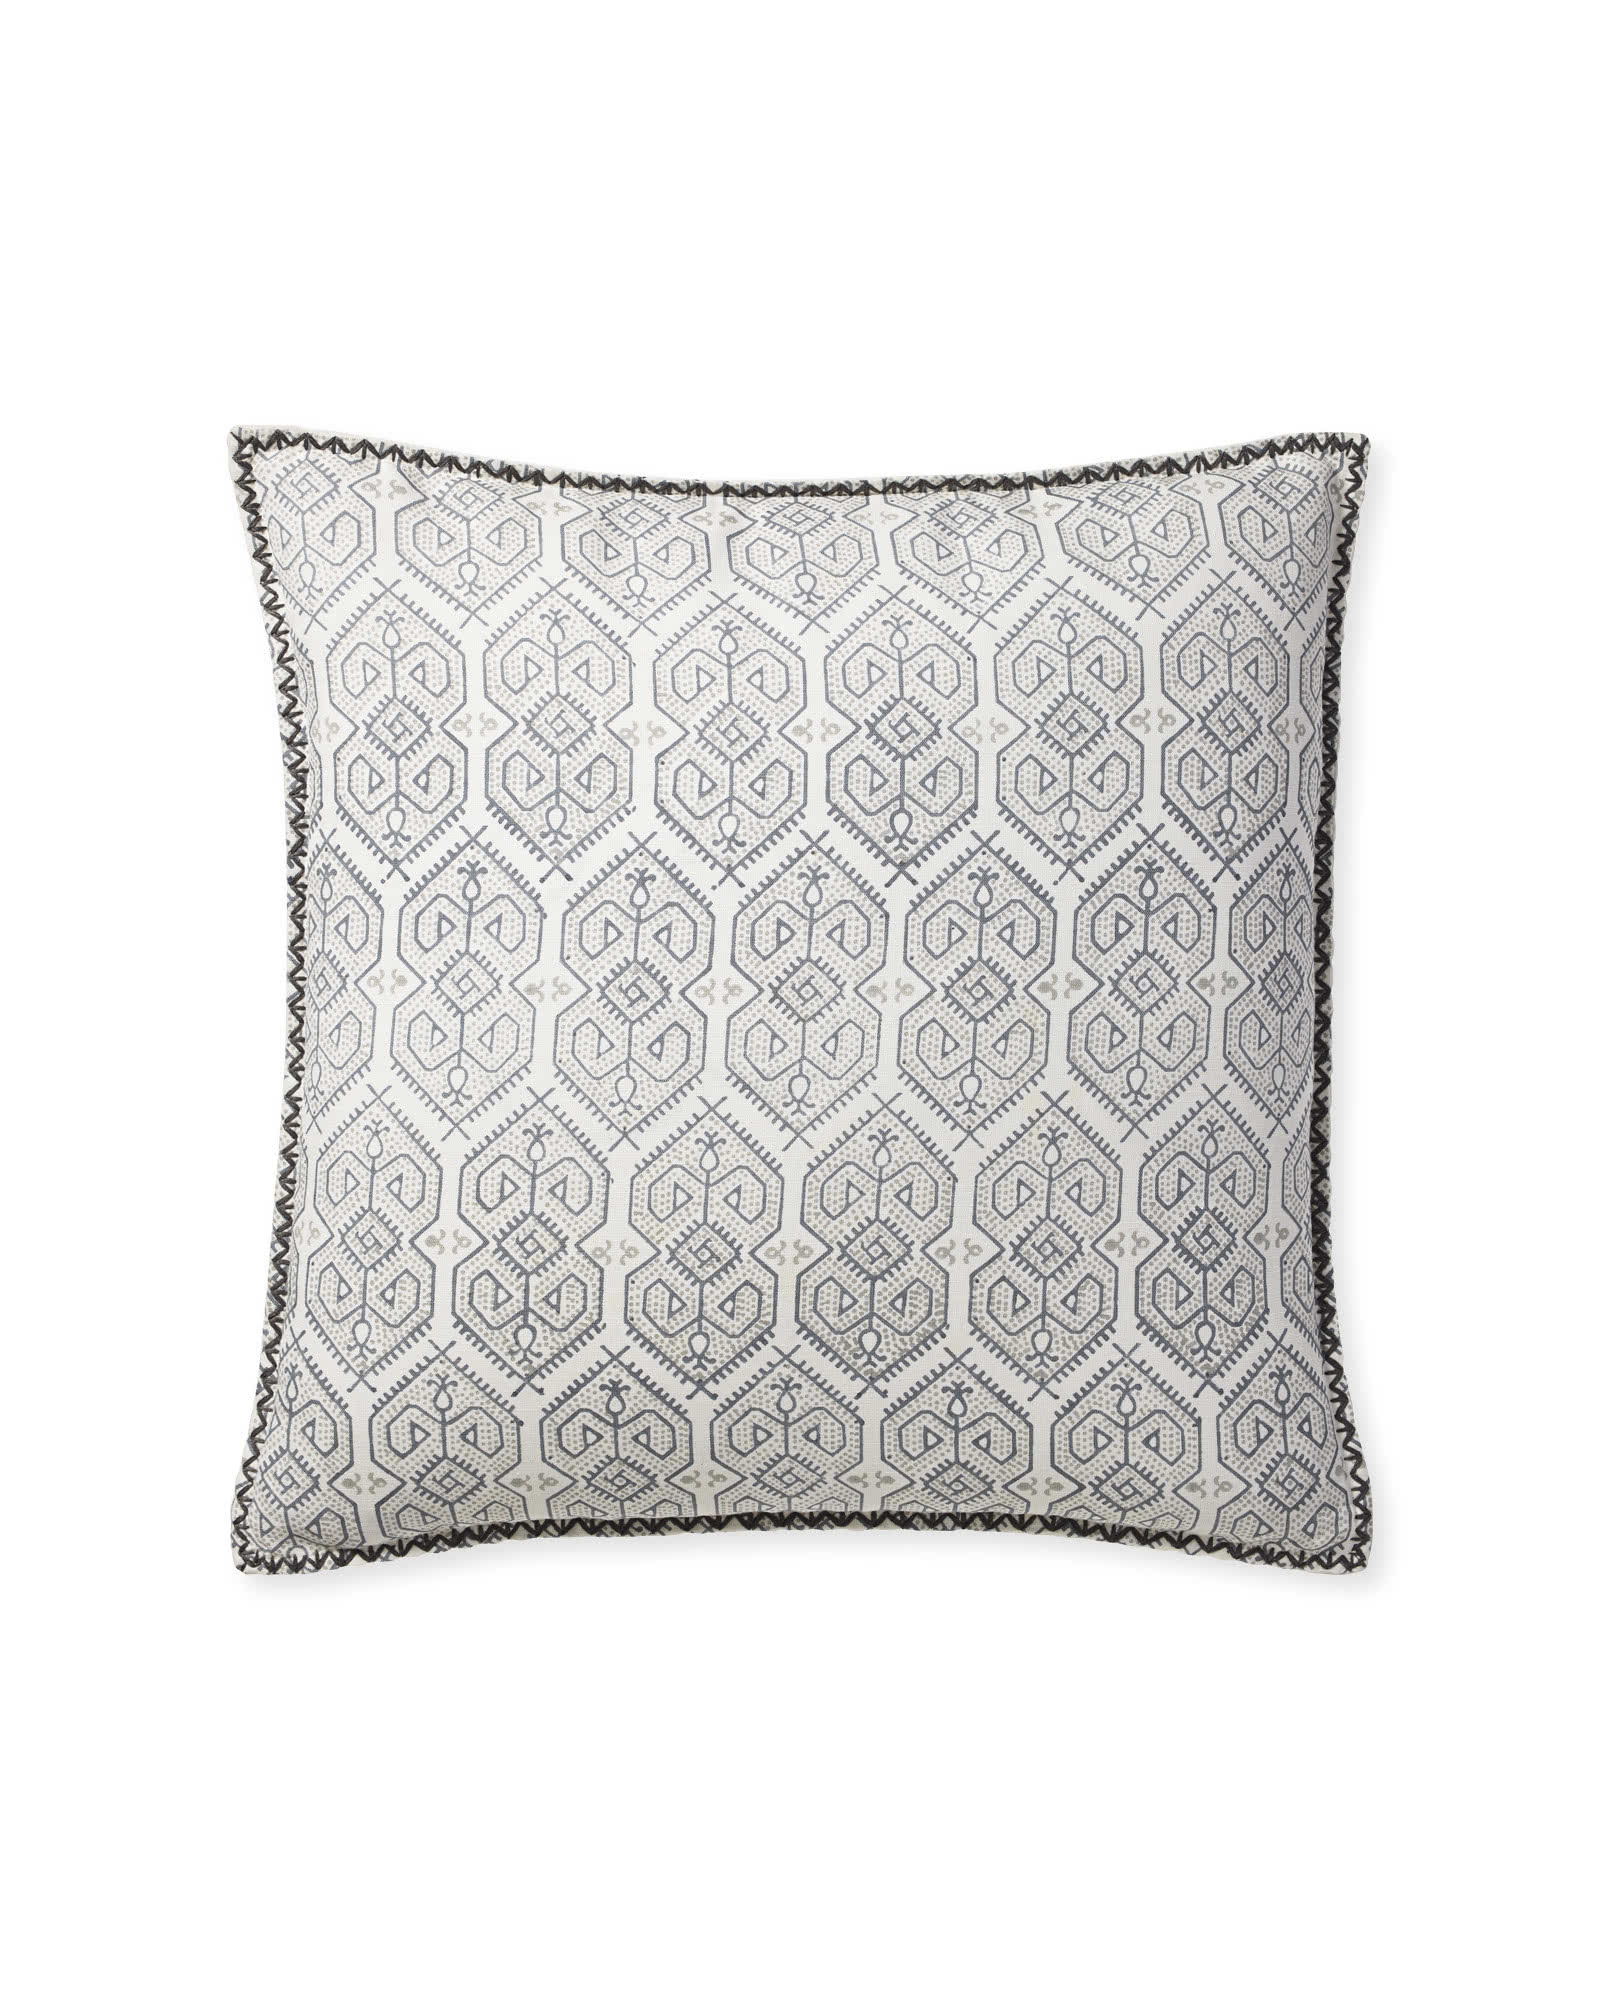 Jamesport Pillow Cover,